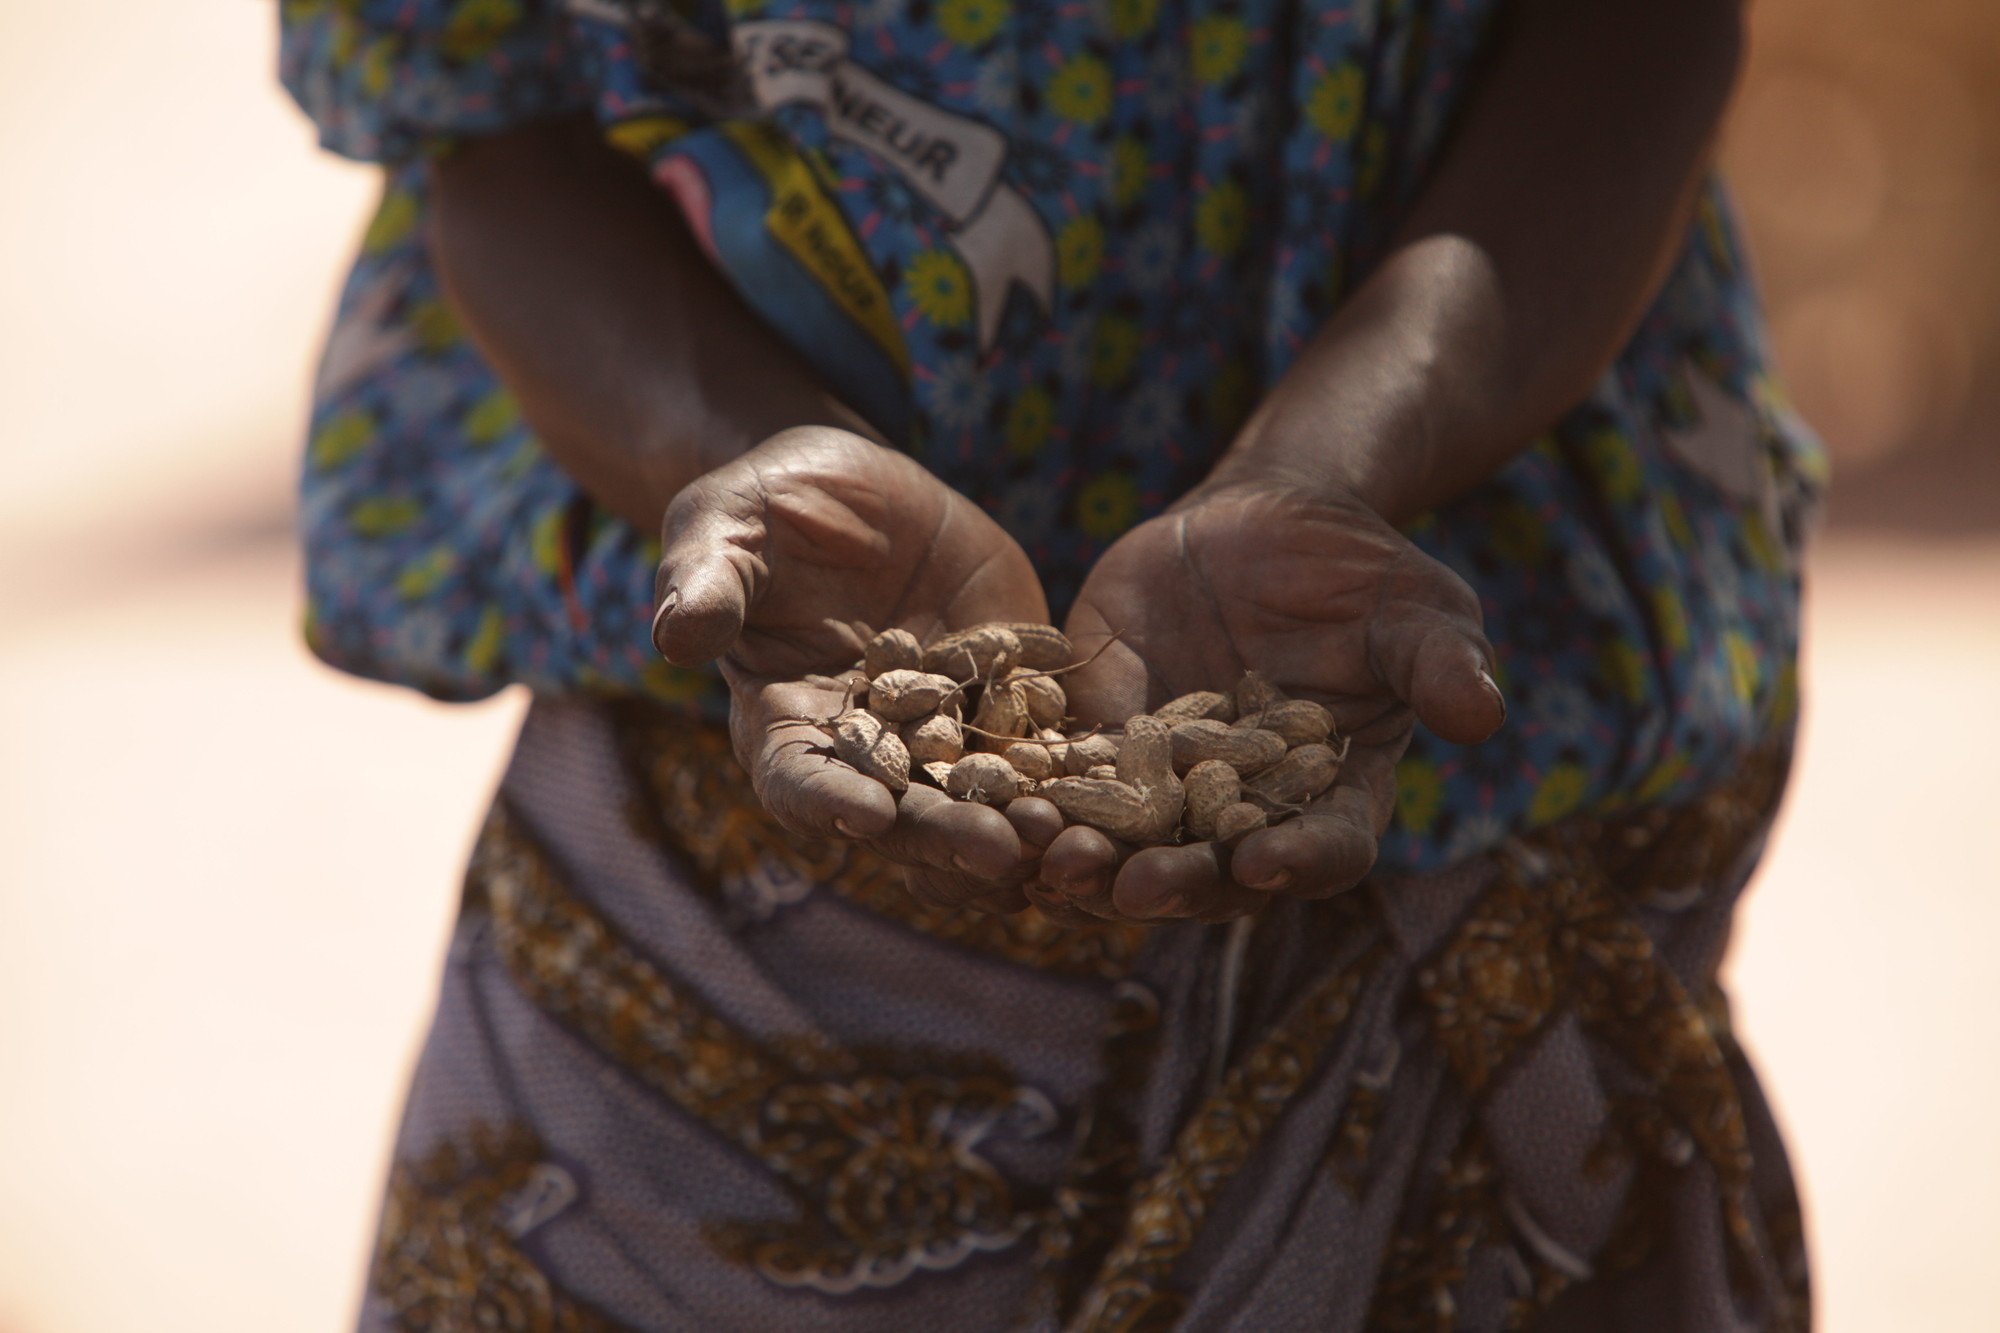 Women also join together on new projects, including a system for loaning groundnuts to families who do not have enough to plant.